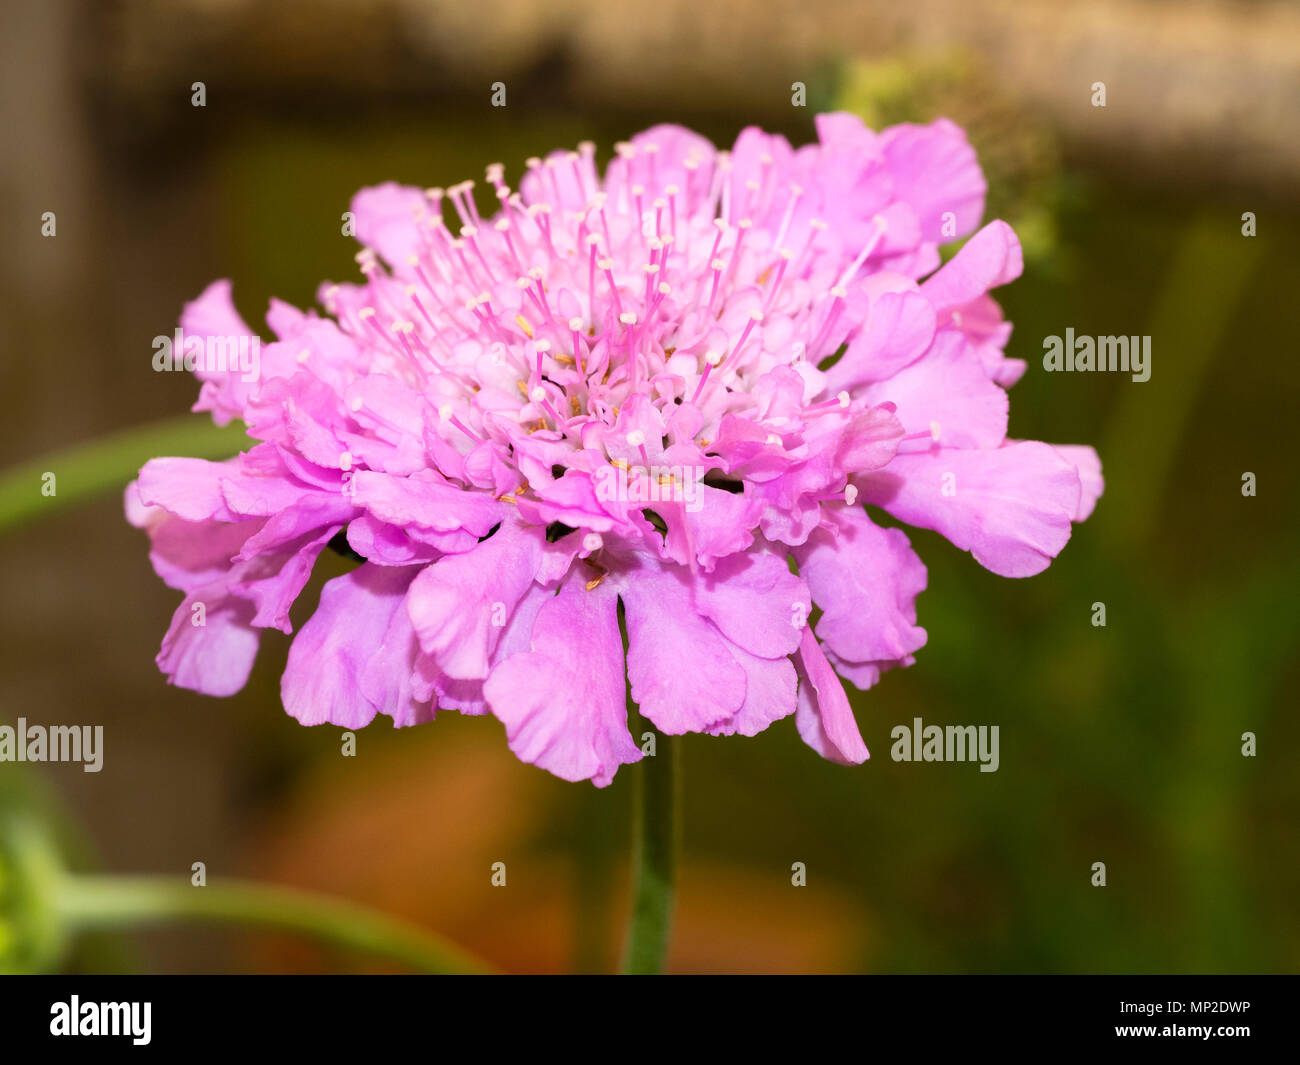 Pincushion Flowers Of The Summer Flowering Hardy Perennial Scabious